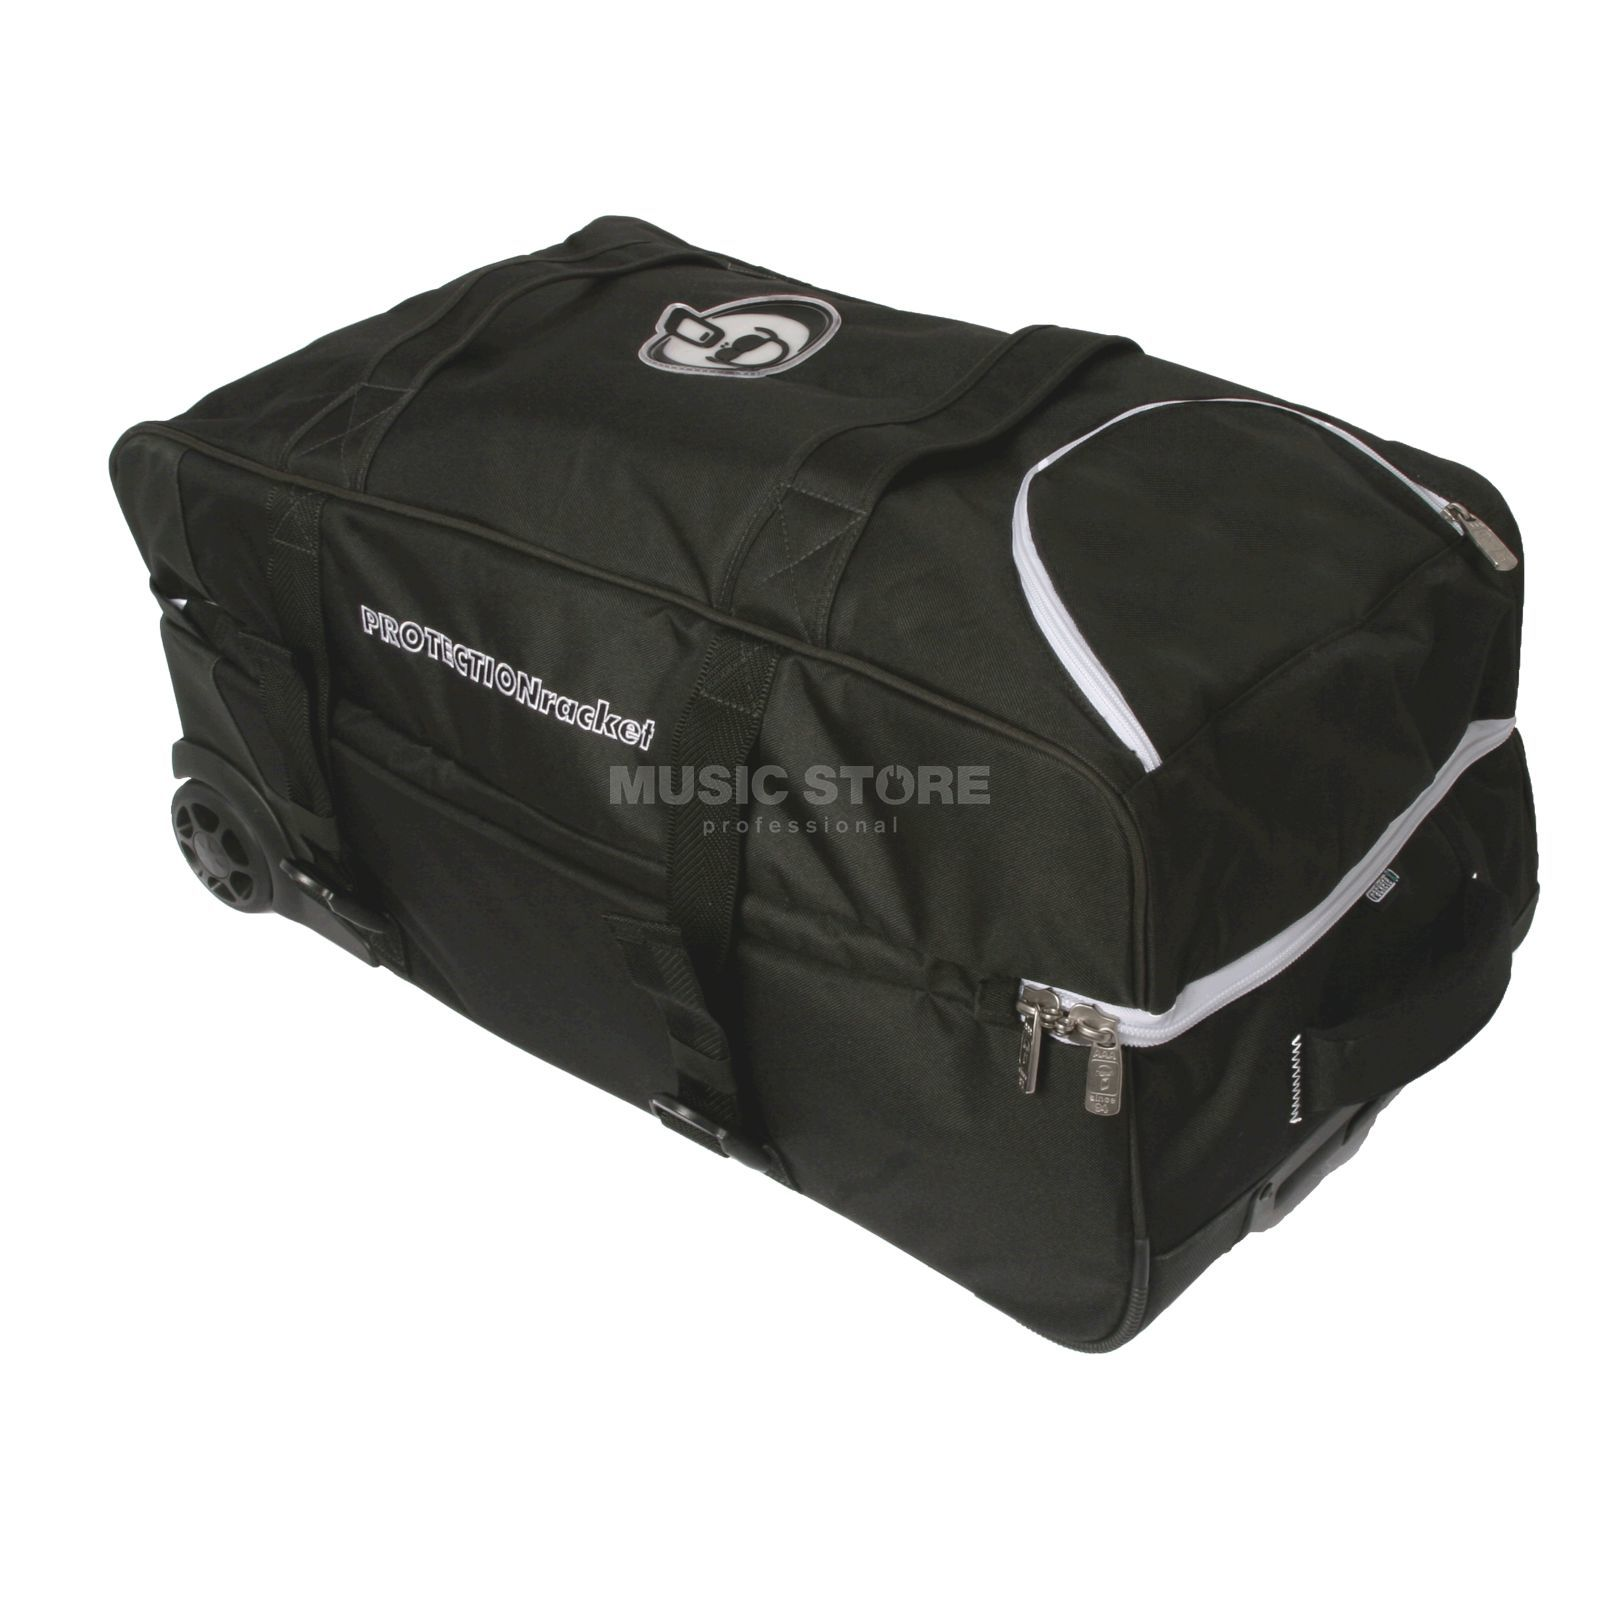 Protection Racket Suitcase 9260-20, 65 ltr. Produktbild